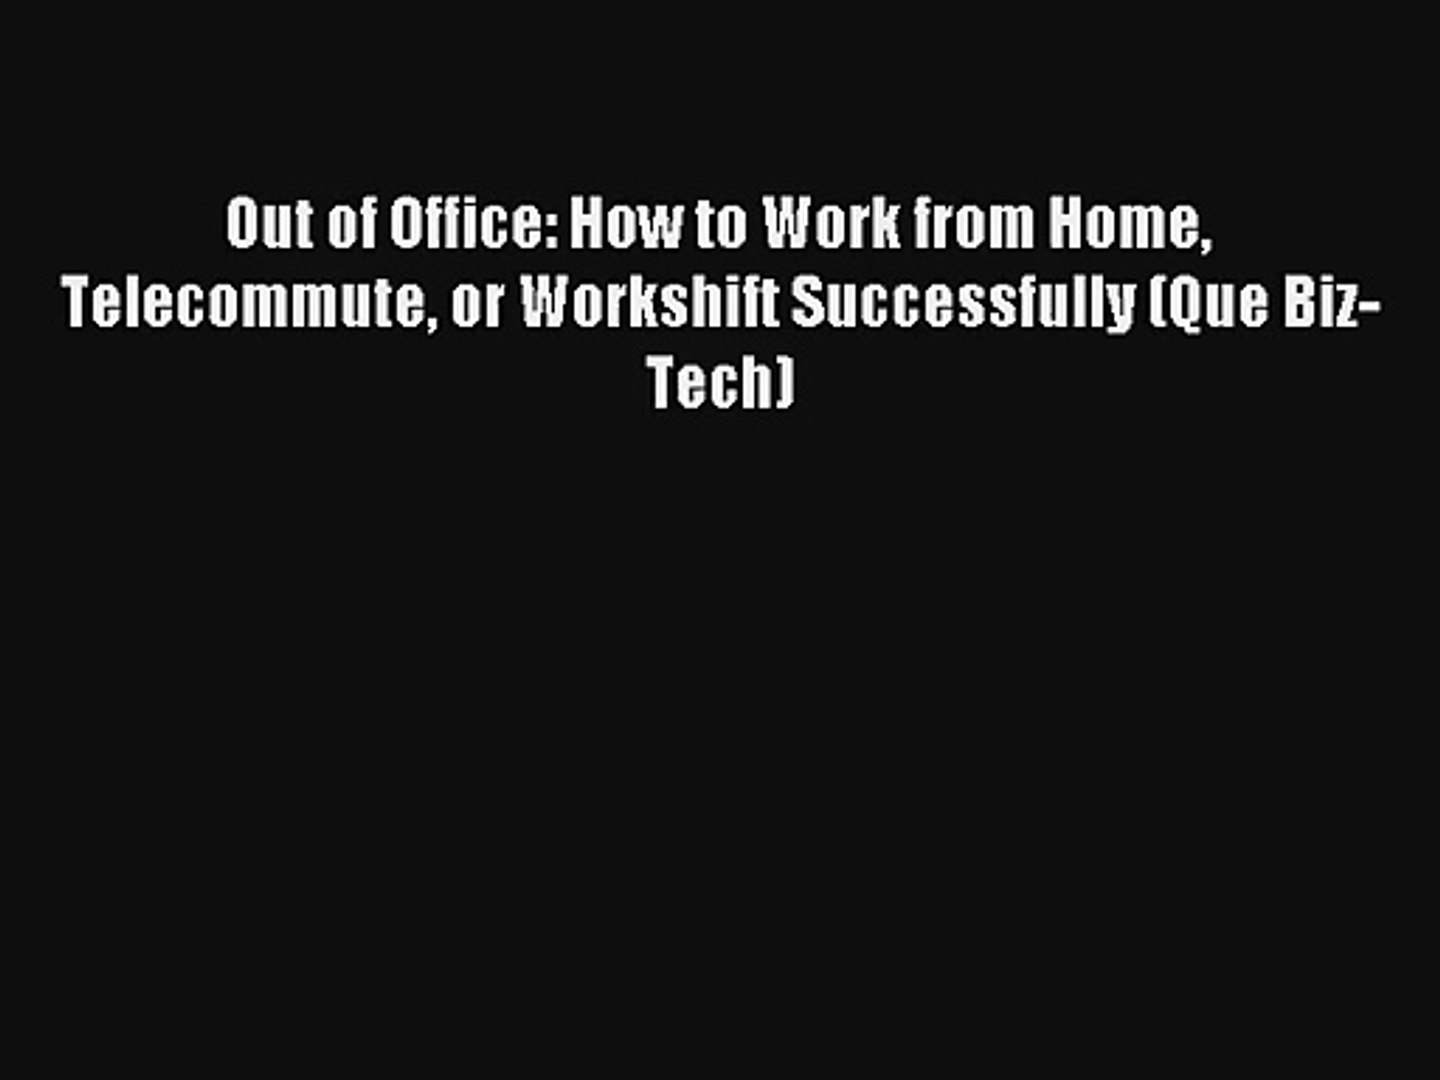 Out of Office How to Work from Home or Workshift Successfully Telecommute